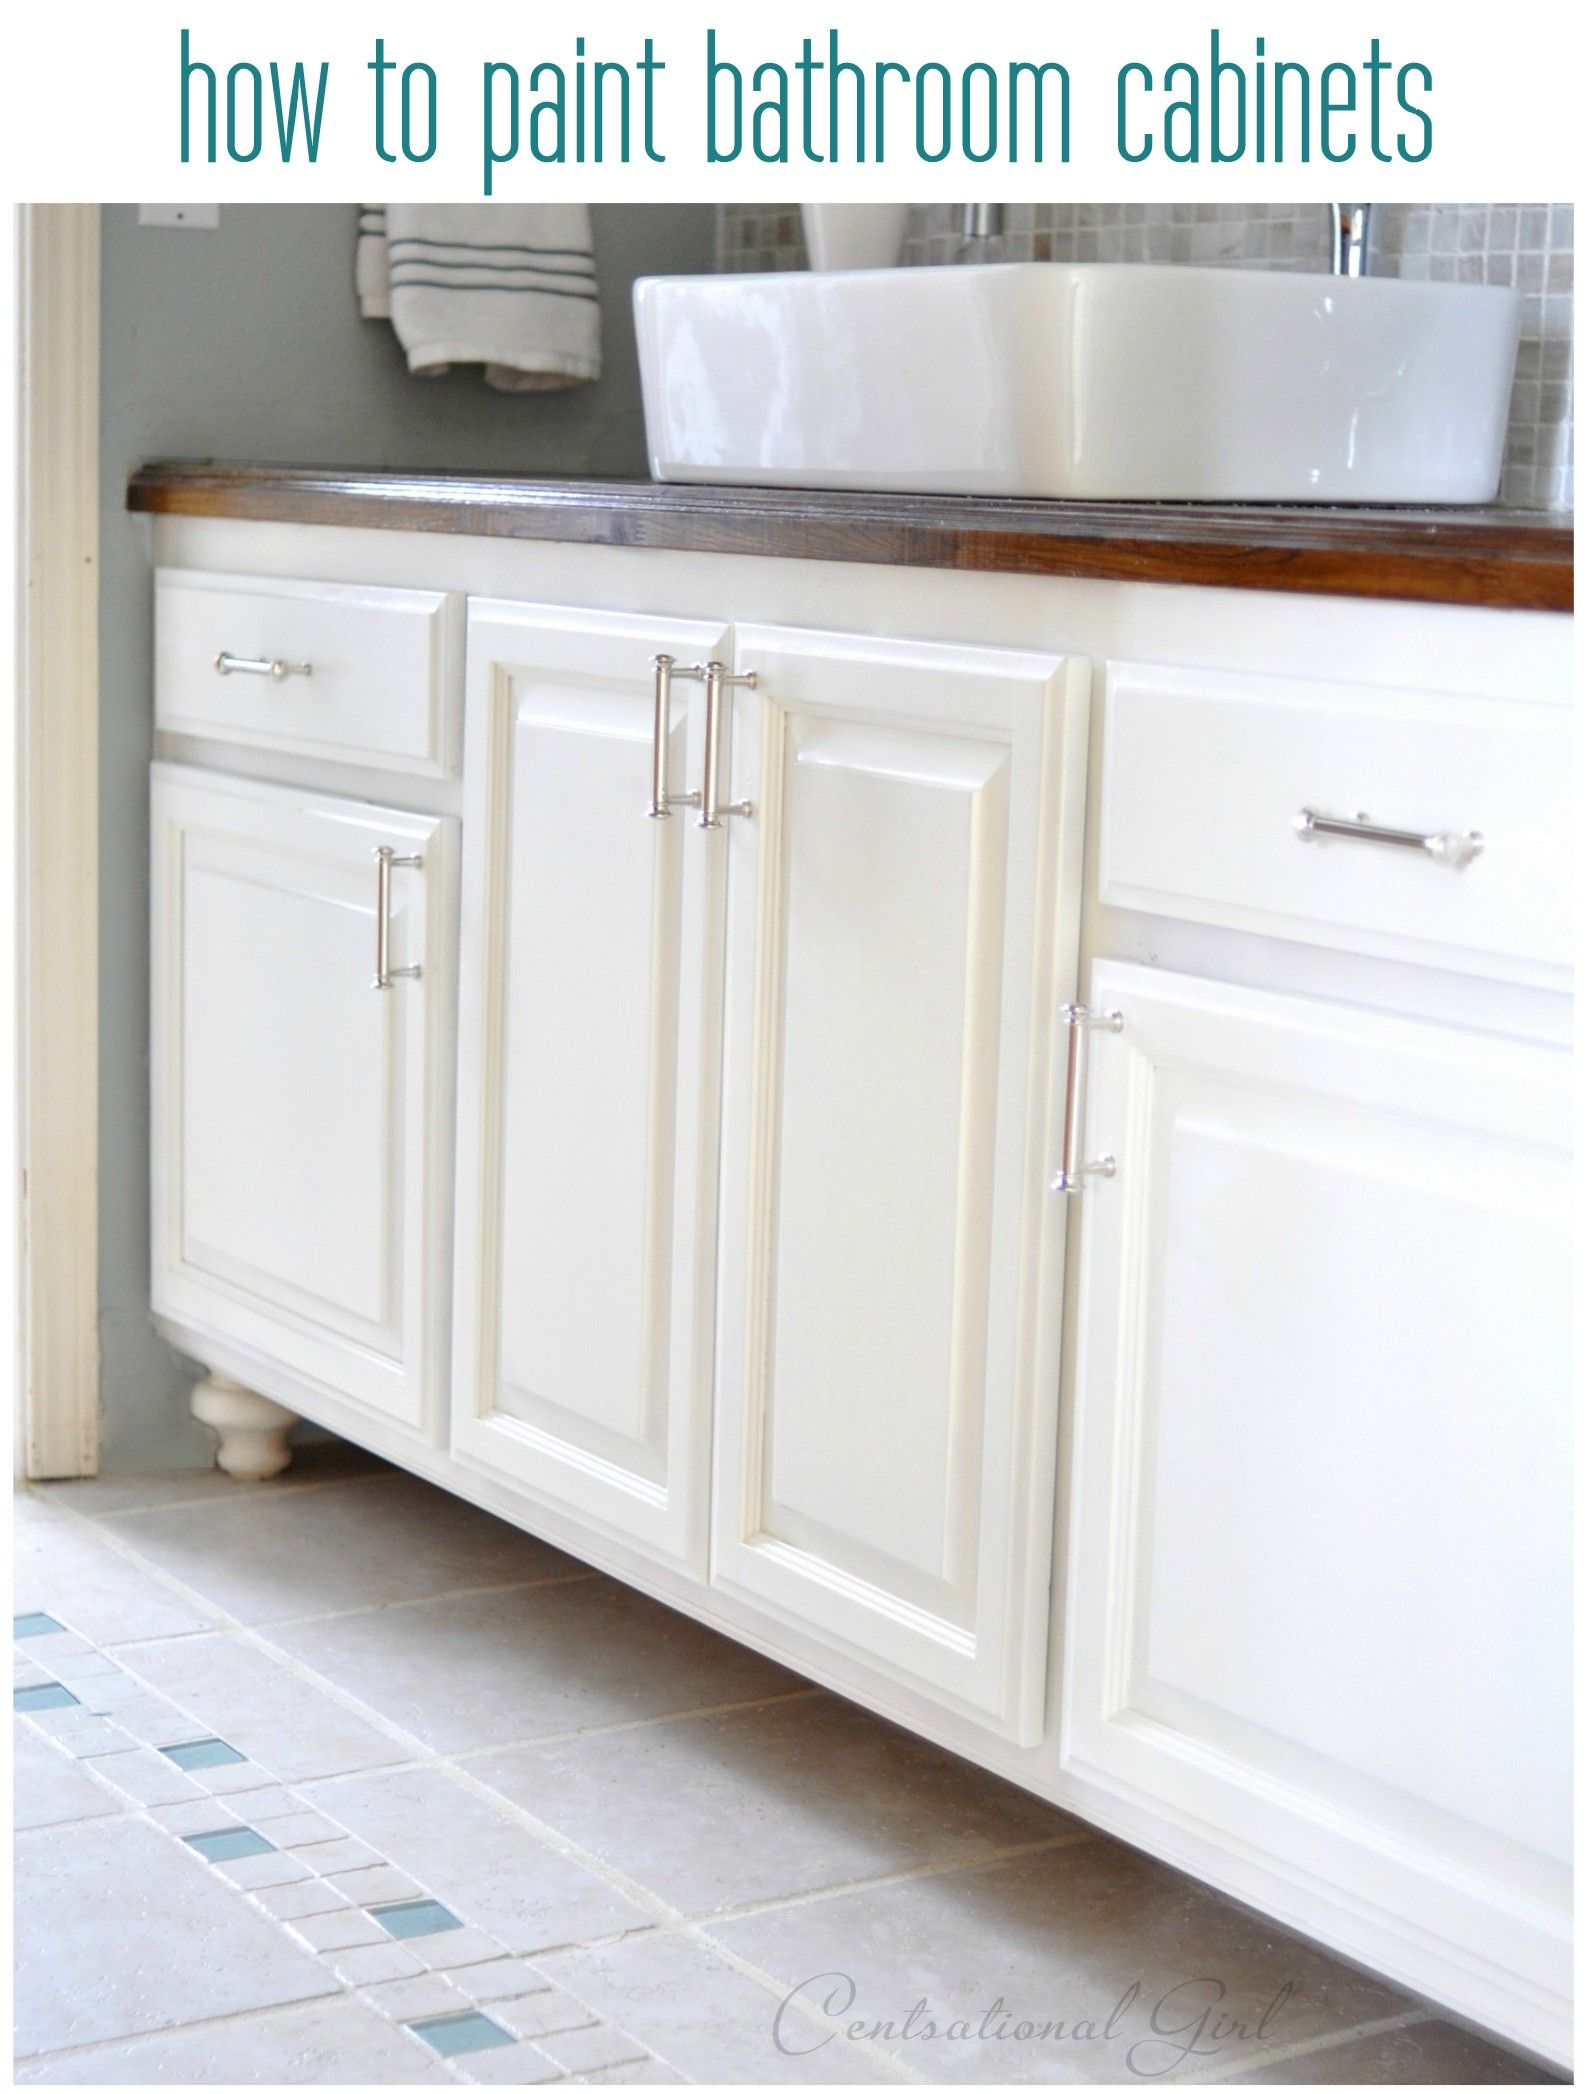 how to paint bathroom cabinets, other bathroom remodeling tips from ...